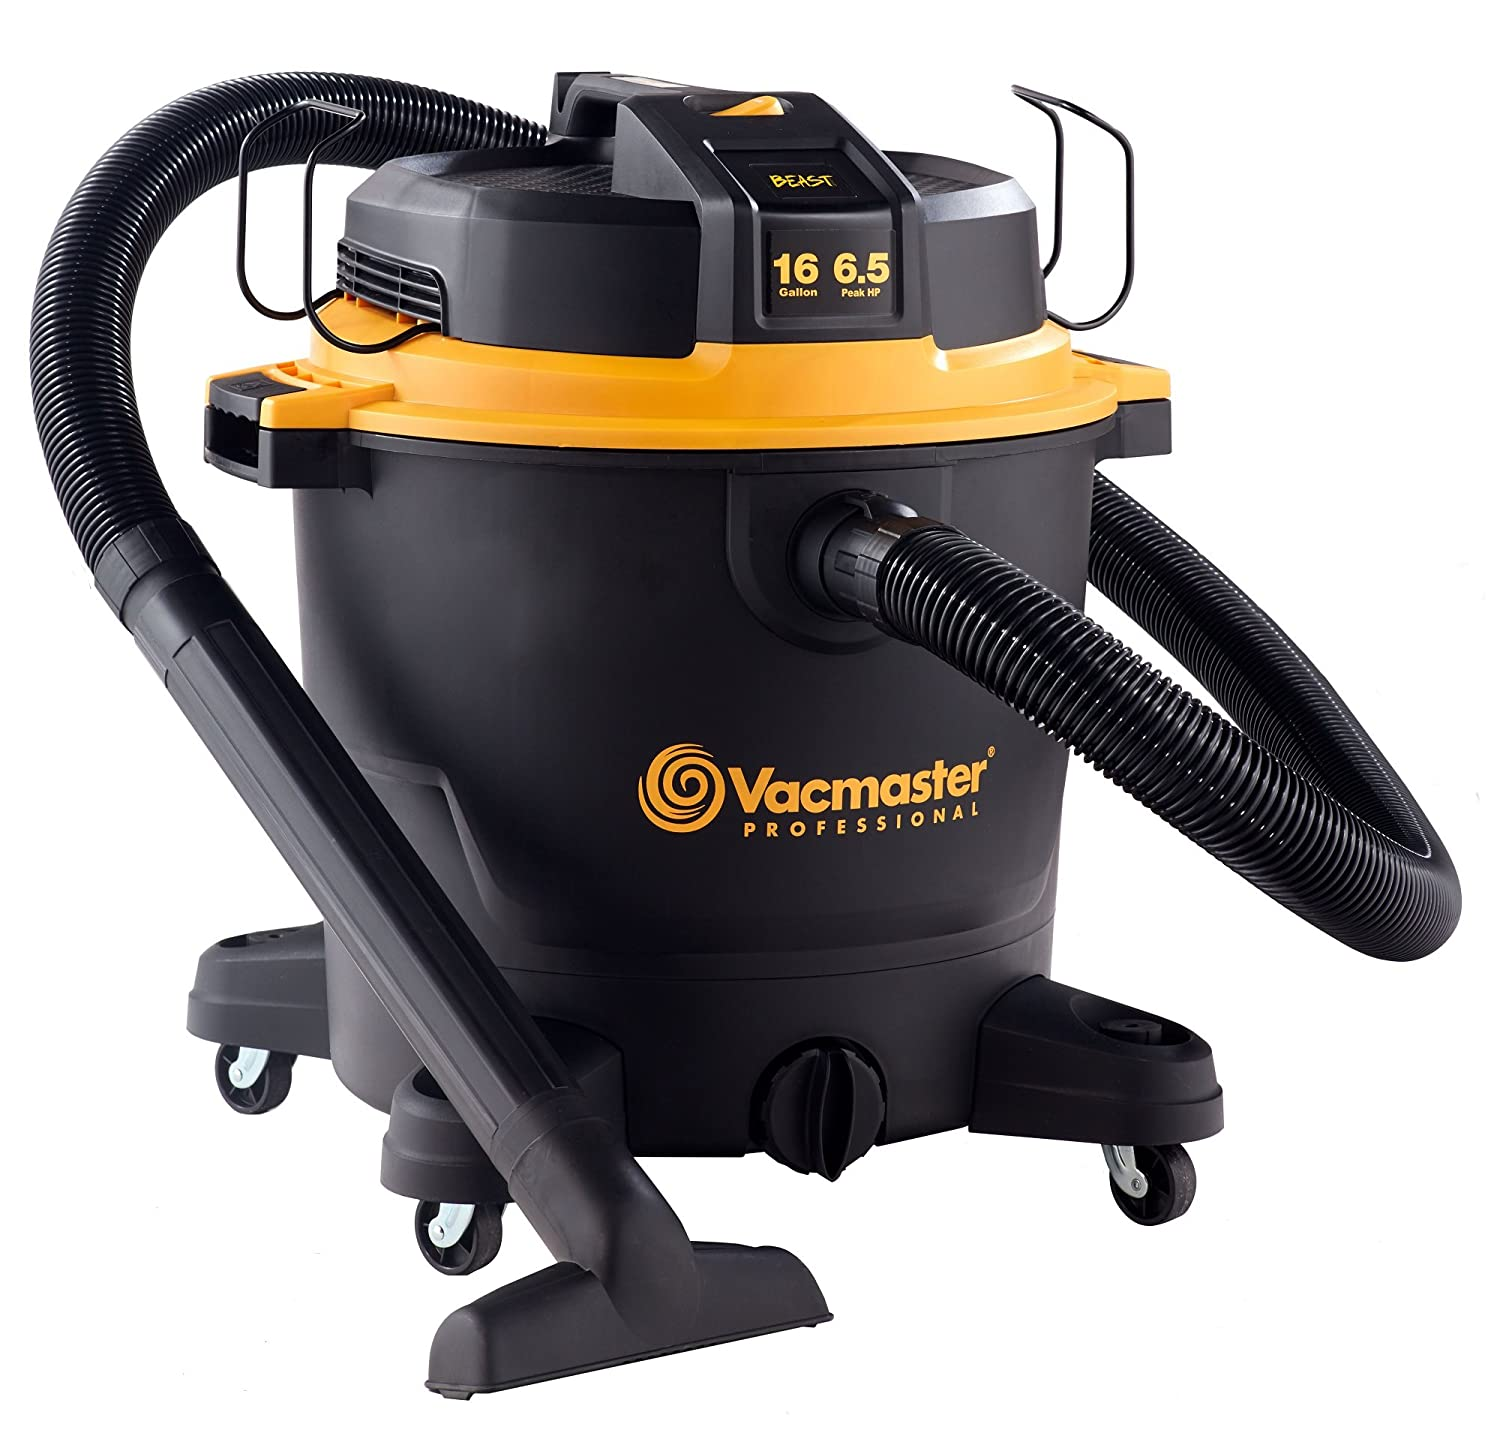 Vacmaster Professional – Professional Wet Dry Vac, 16 Gallon, Beast Series, 6.5 HP 2-1 2 Hose VJH1612PF0201